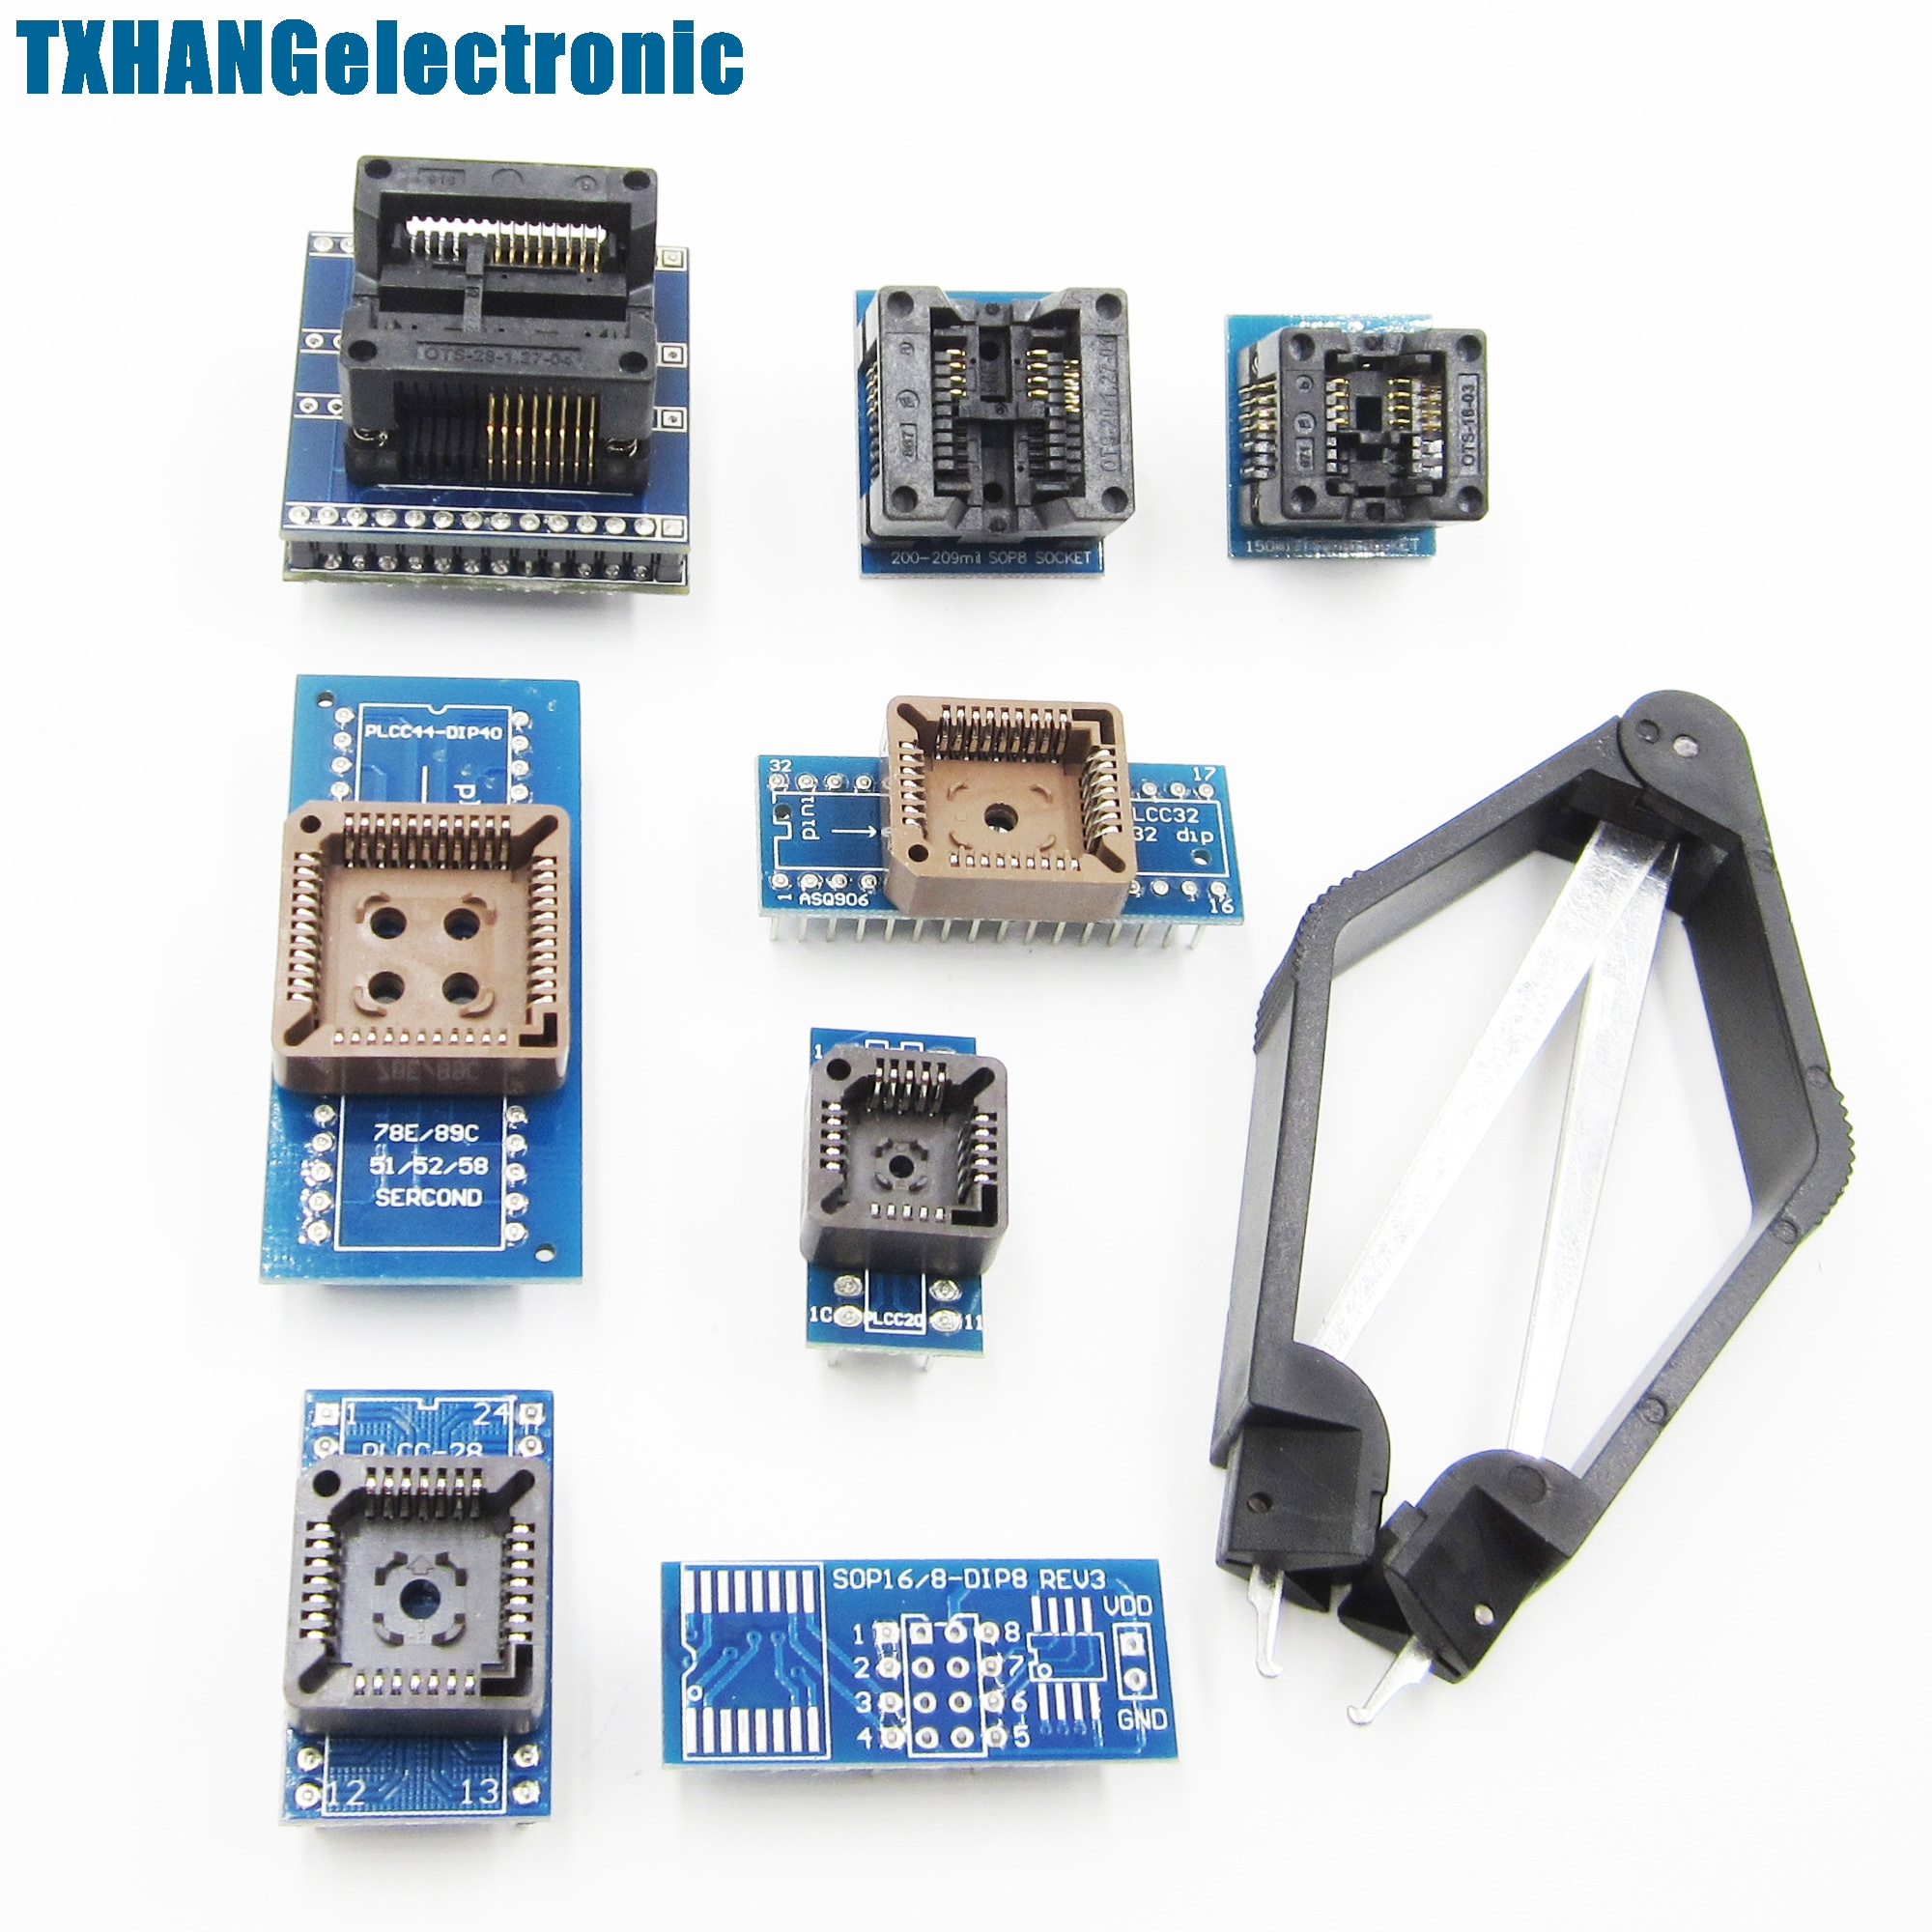 8 Programmer Adapters Sockets Kit for TL866CS TL866A EZP2010 with IC Extractor electronic diy kit